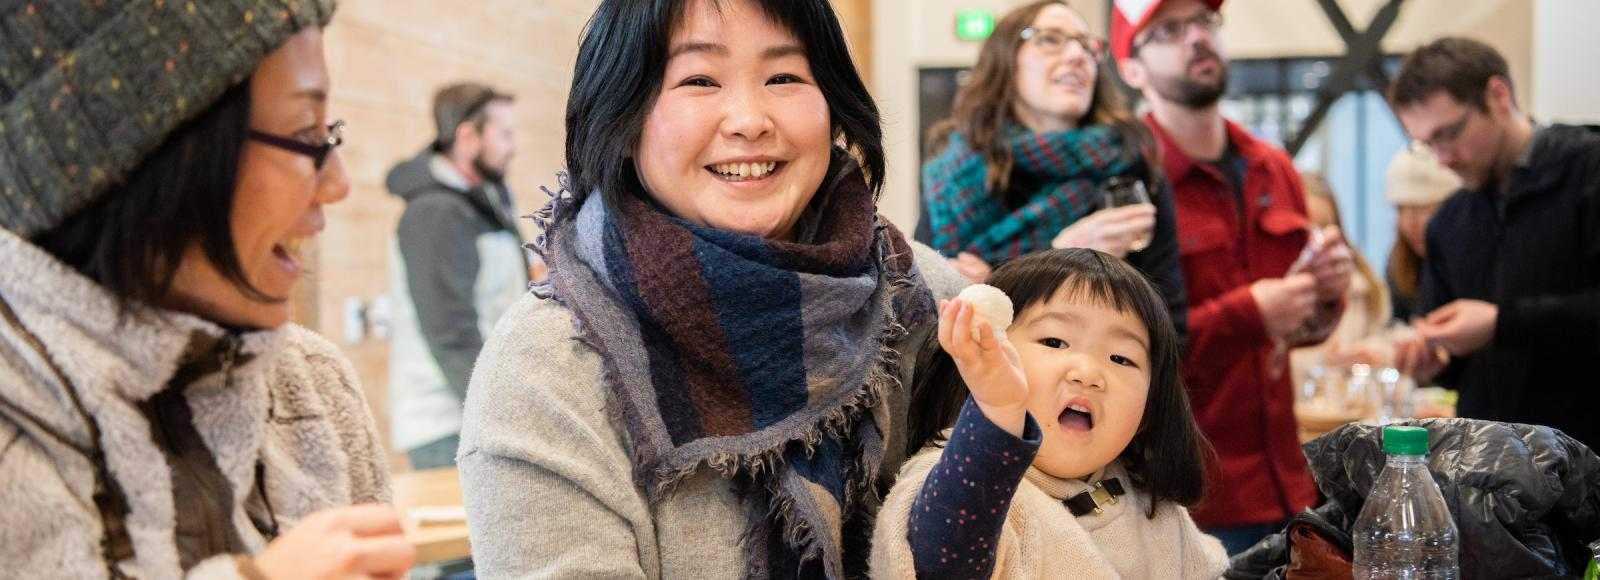 A woman and her daughter smile while enjoying a rice ball.